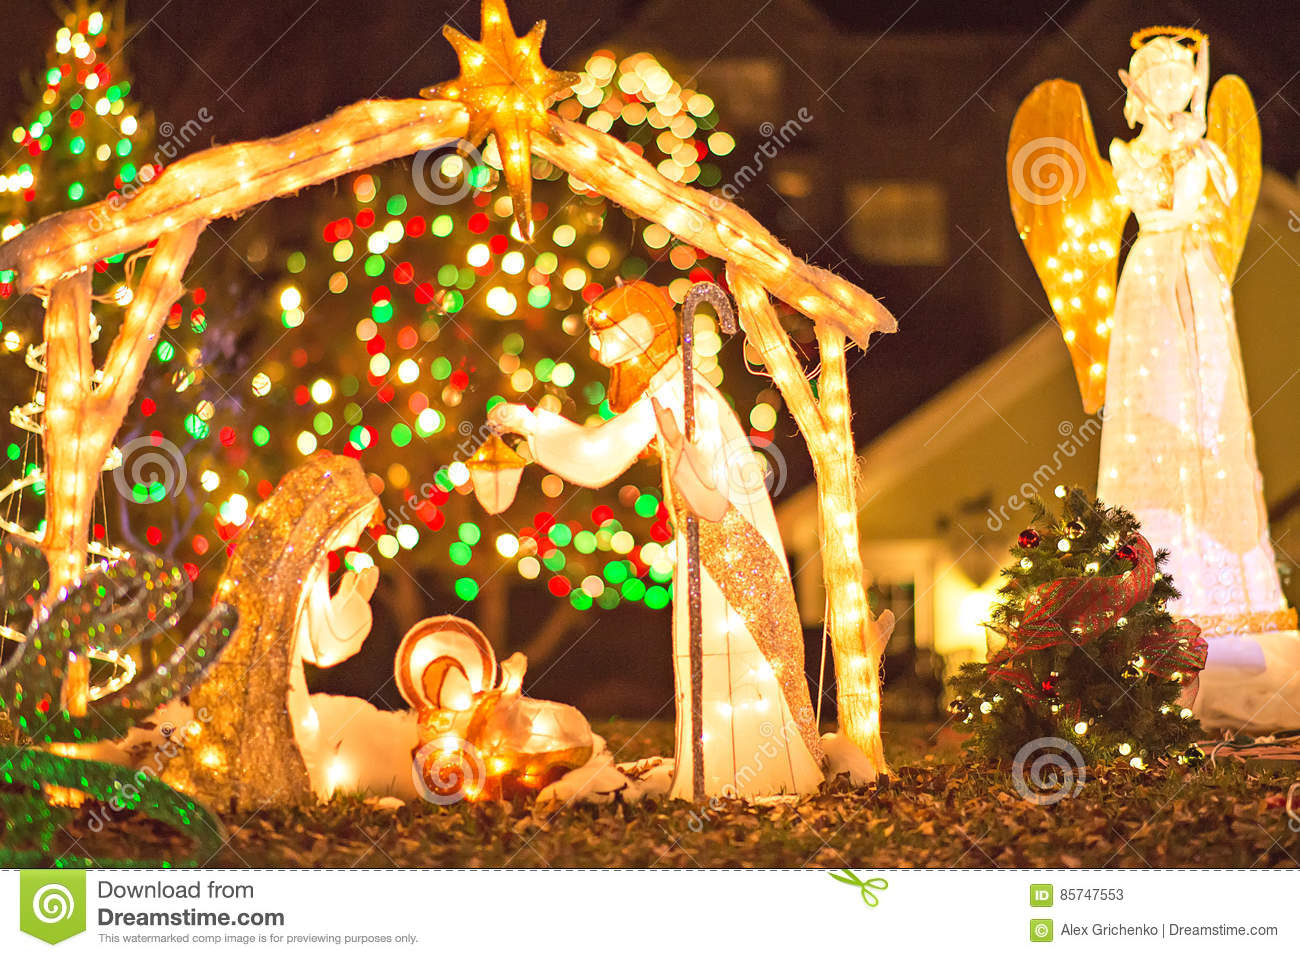 download outdoor christmas decorations at christmas town usa stock image image of light carolina